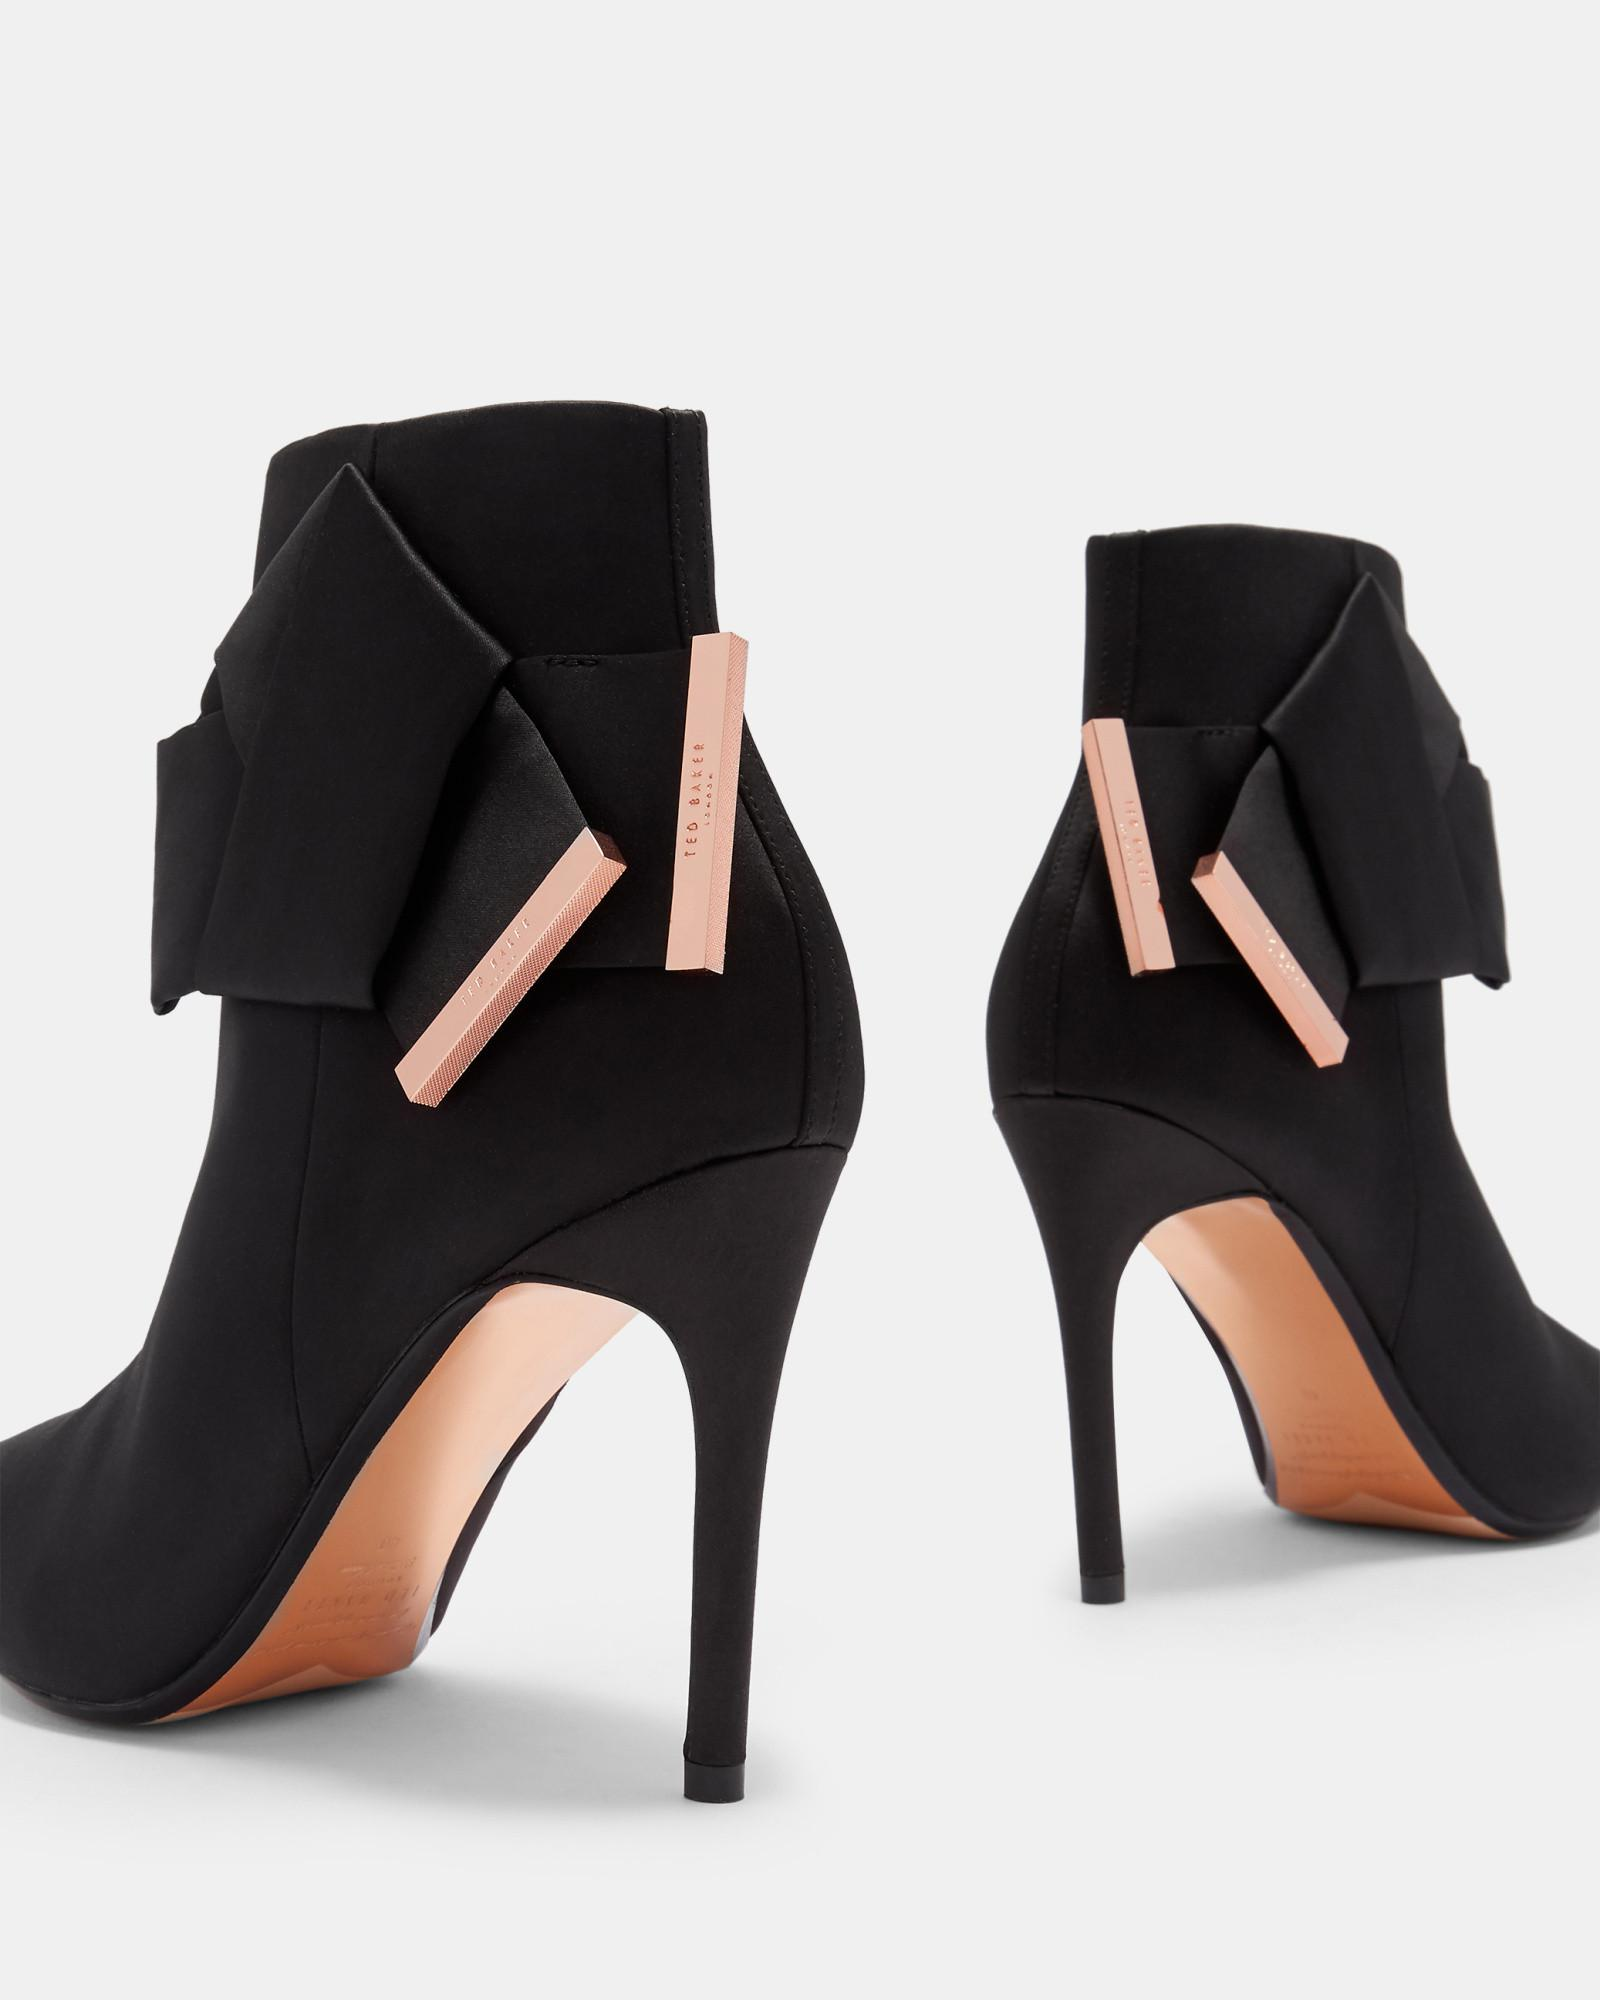 75dd1c95477 Ted Baker Black Knotted Bow Satin Ankle Boots